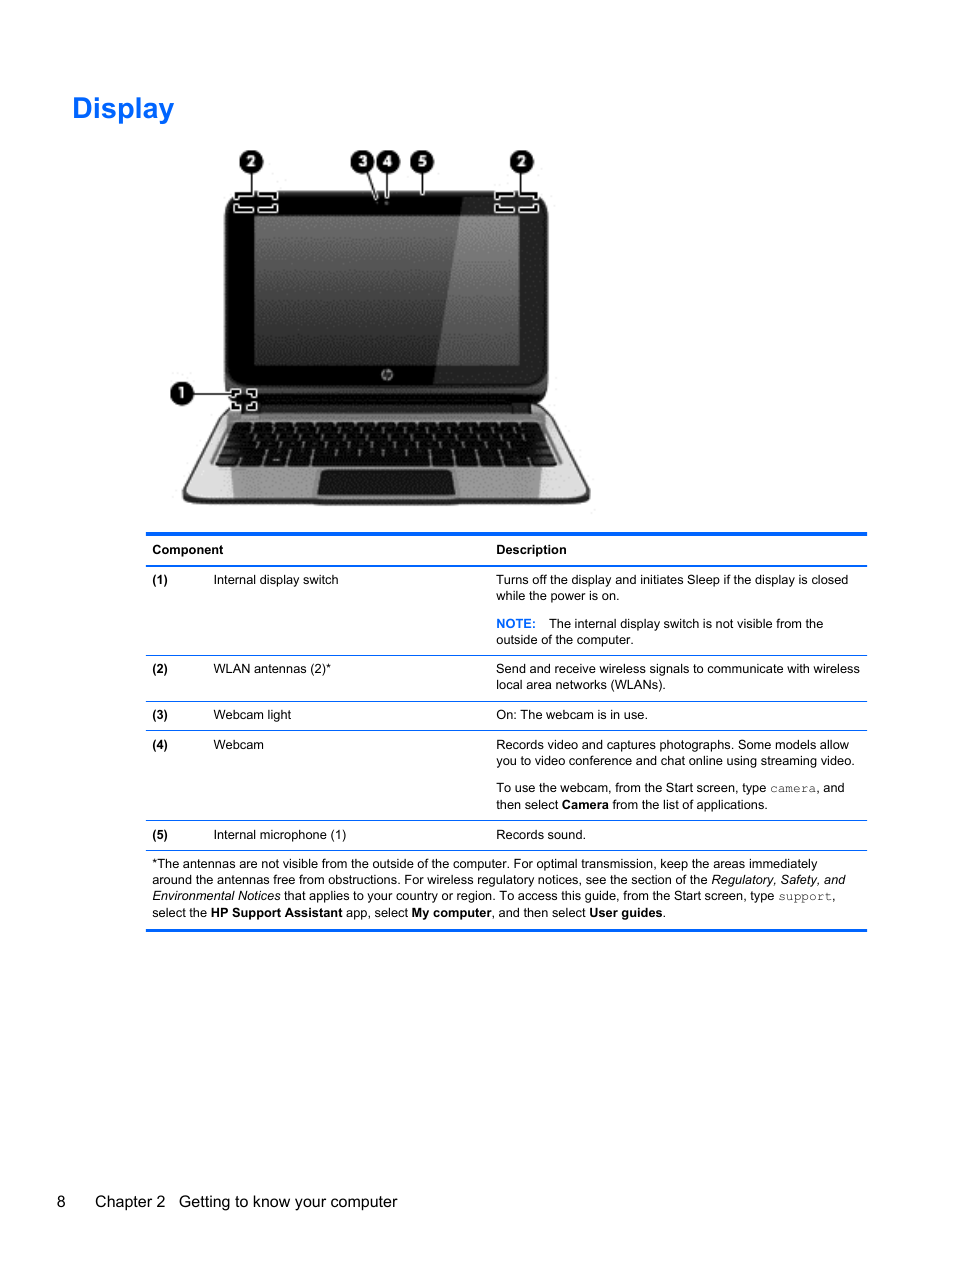 Display | HP Pavilion 10 TouchSmart 10-e010nr Notebook PC User Manual |  Page 16